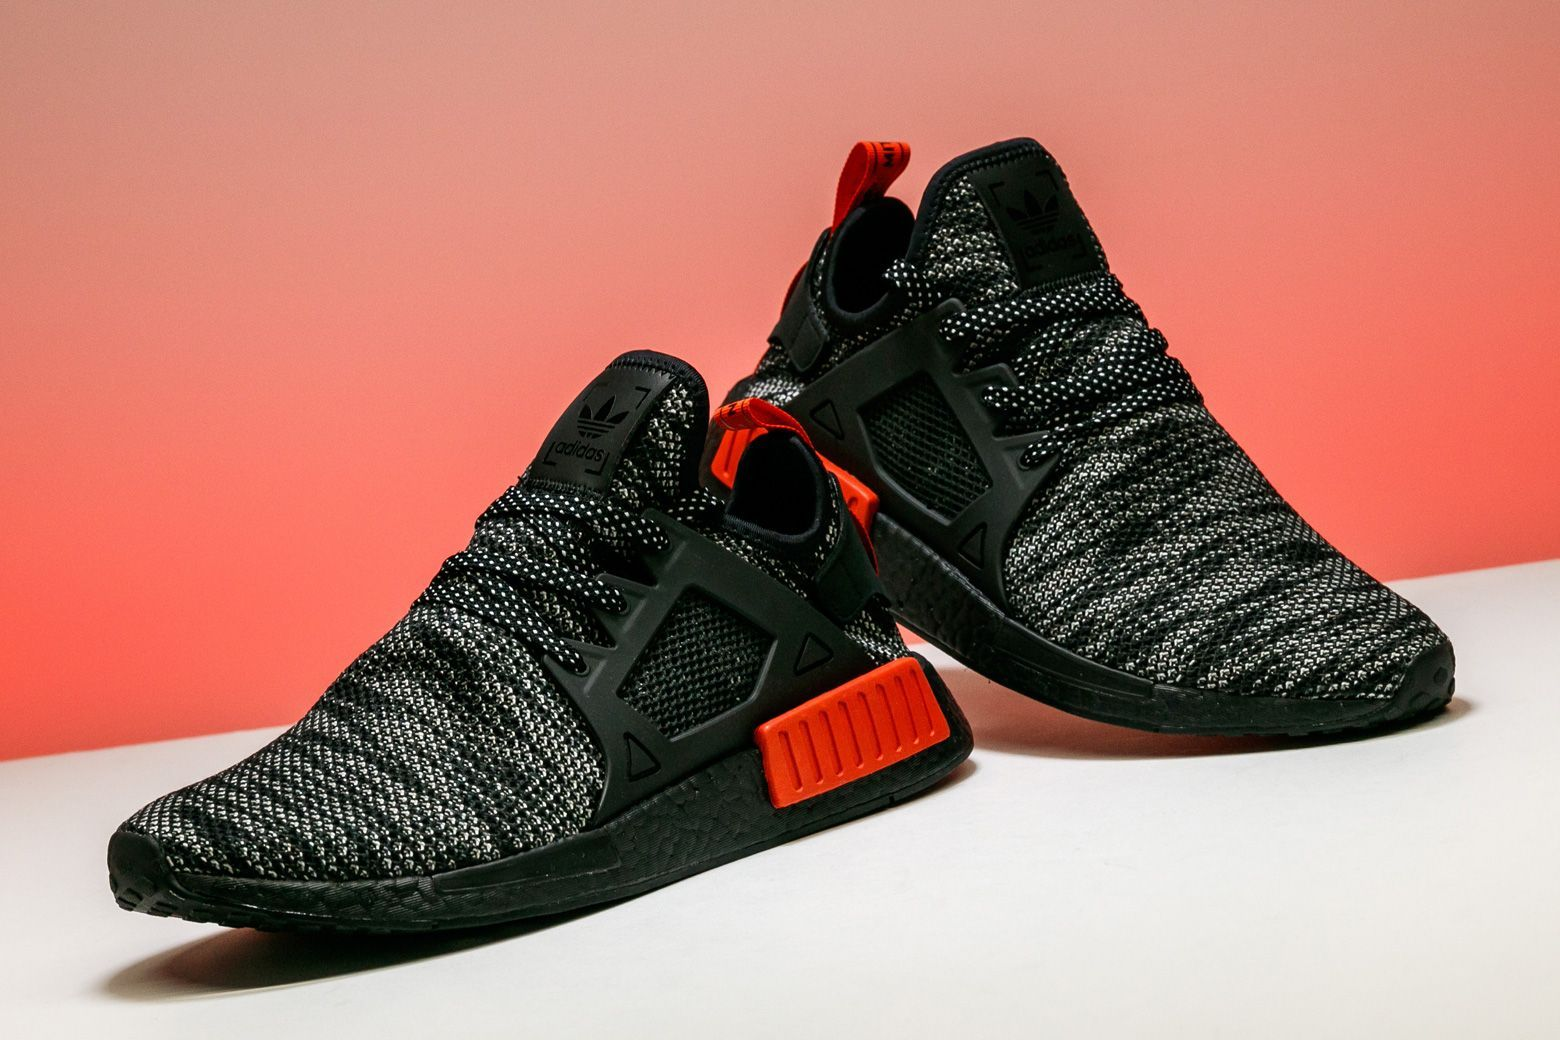 online retailer 2e2f1 c574a From a recent Europe-only release, peep the adidas NMDXR1 in a black,  white, and red colorway. www.stadiumgoods.... adidas